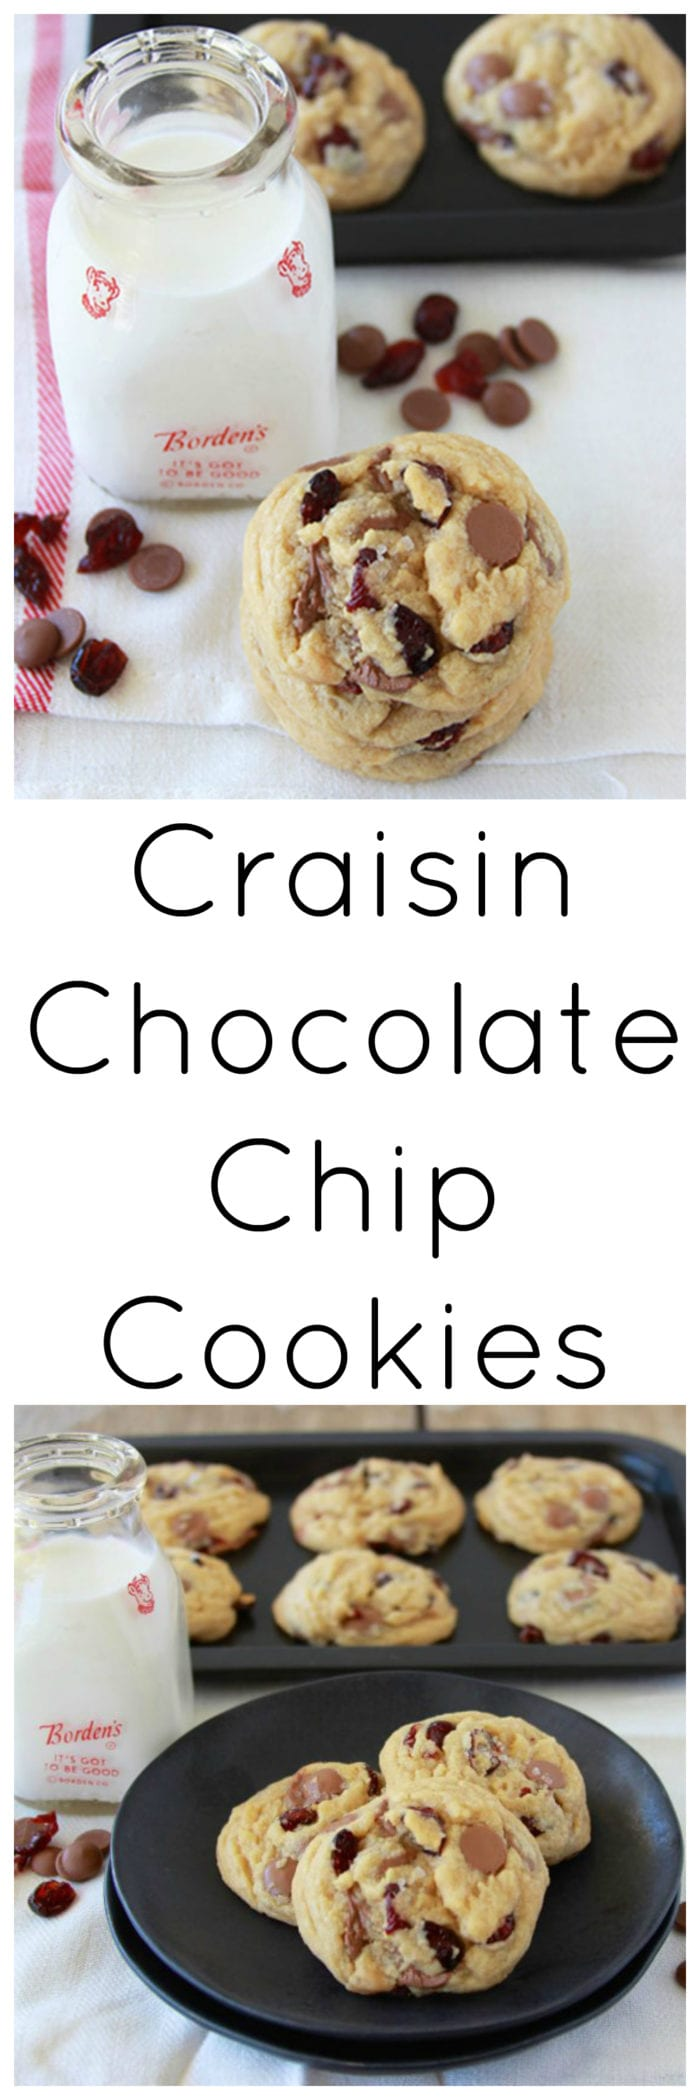 Craisin Chocolate Chip Cookies are a mouth-watering combination in our chewy cookies! www.cookingwithruthie.com